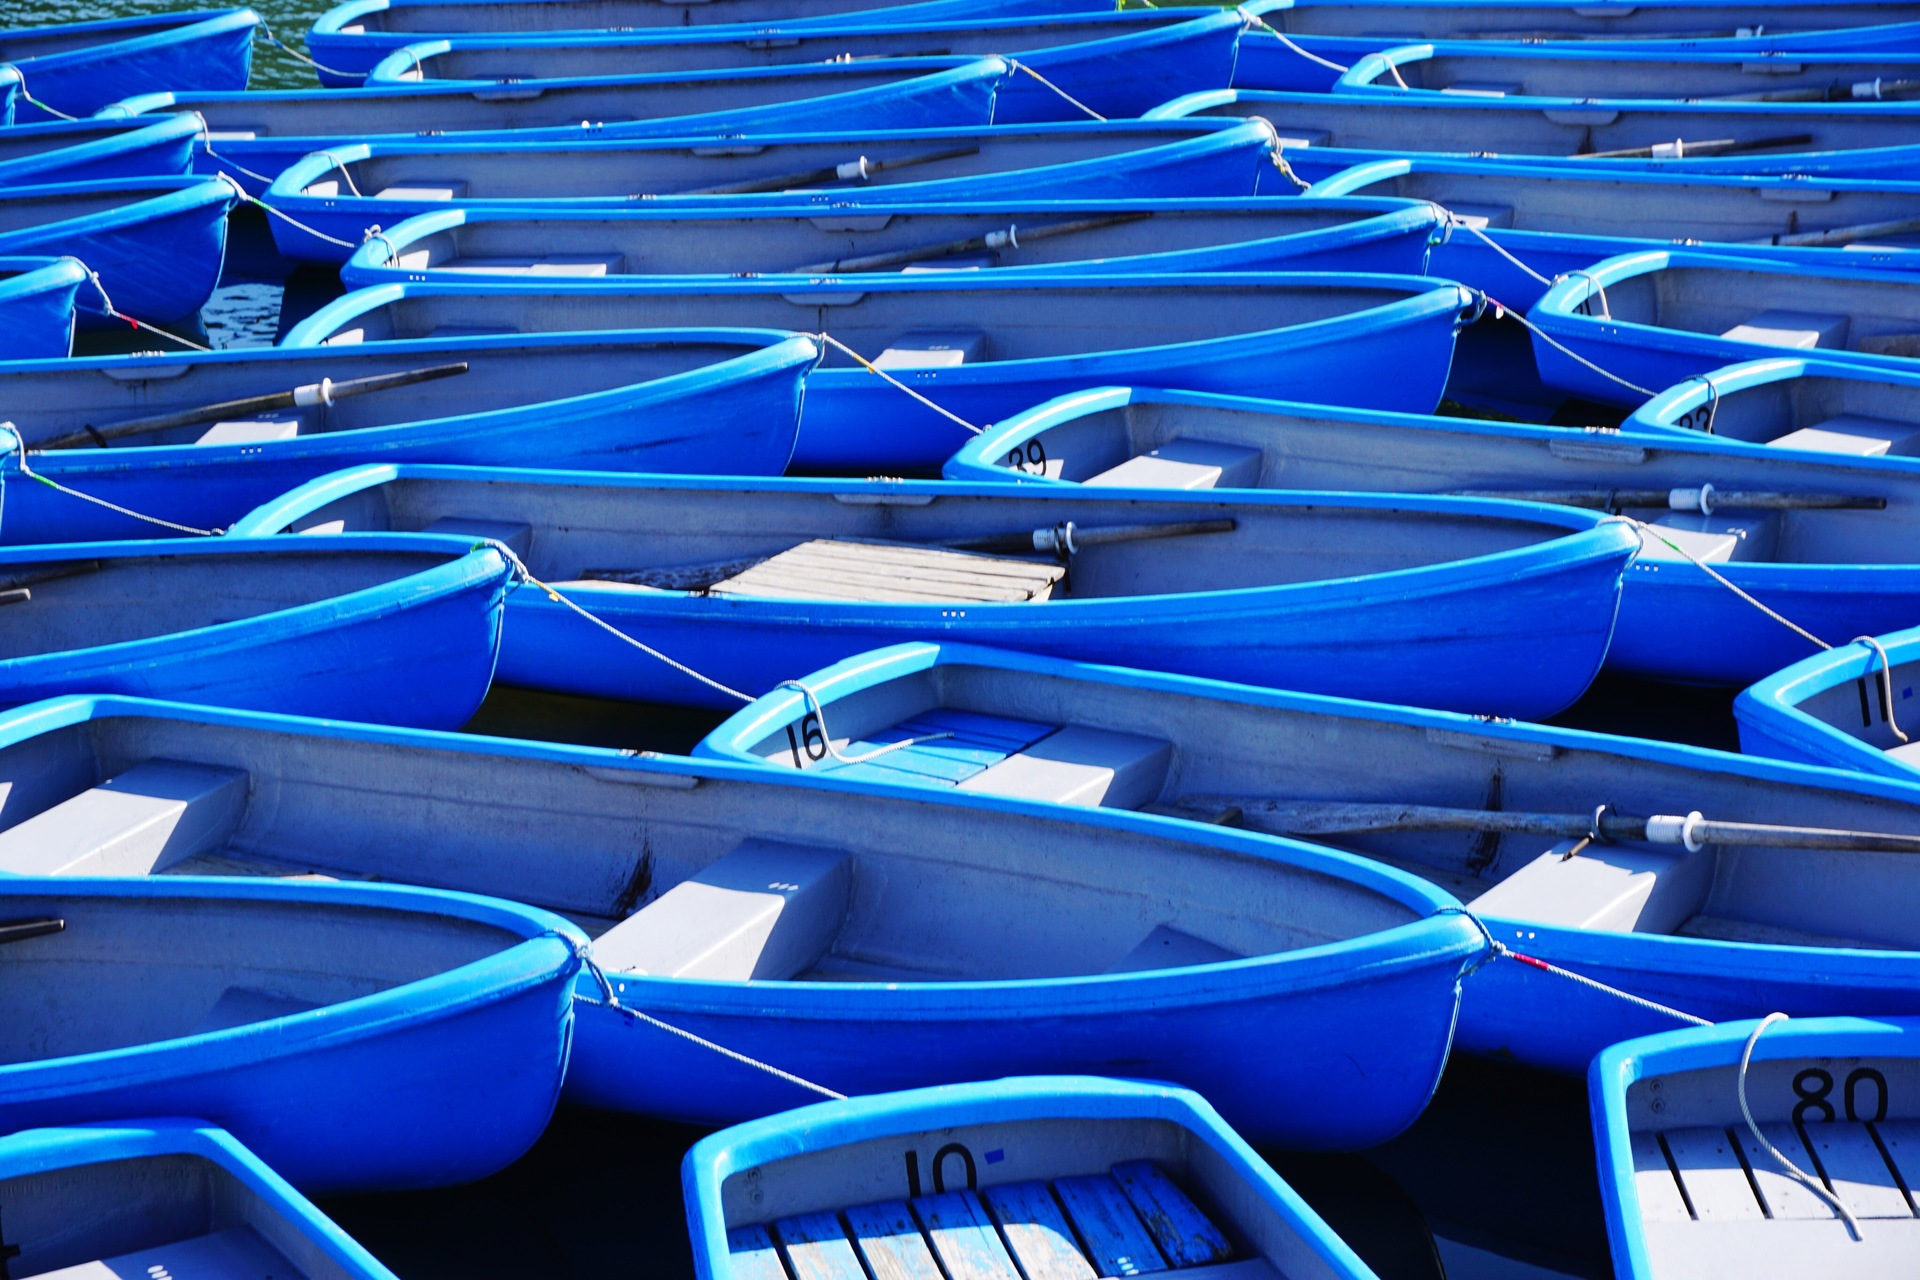 Blue tourist boats moored for the end of season at Arashiyama.